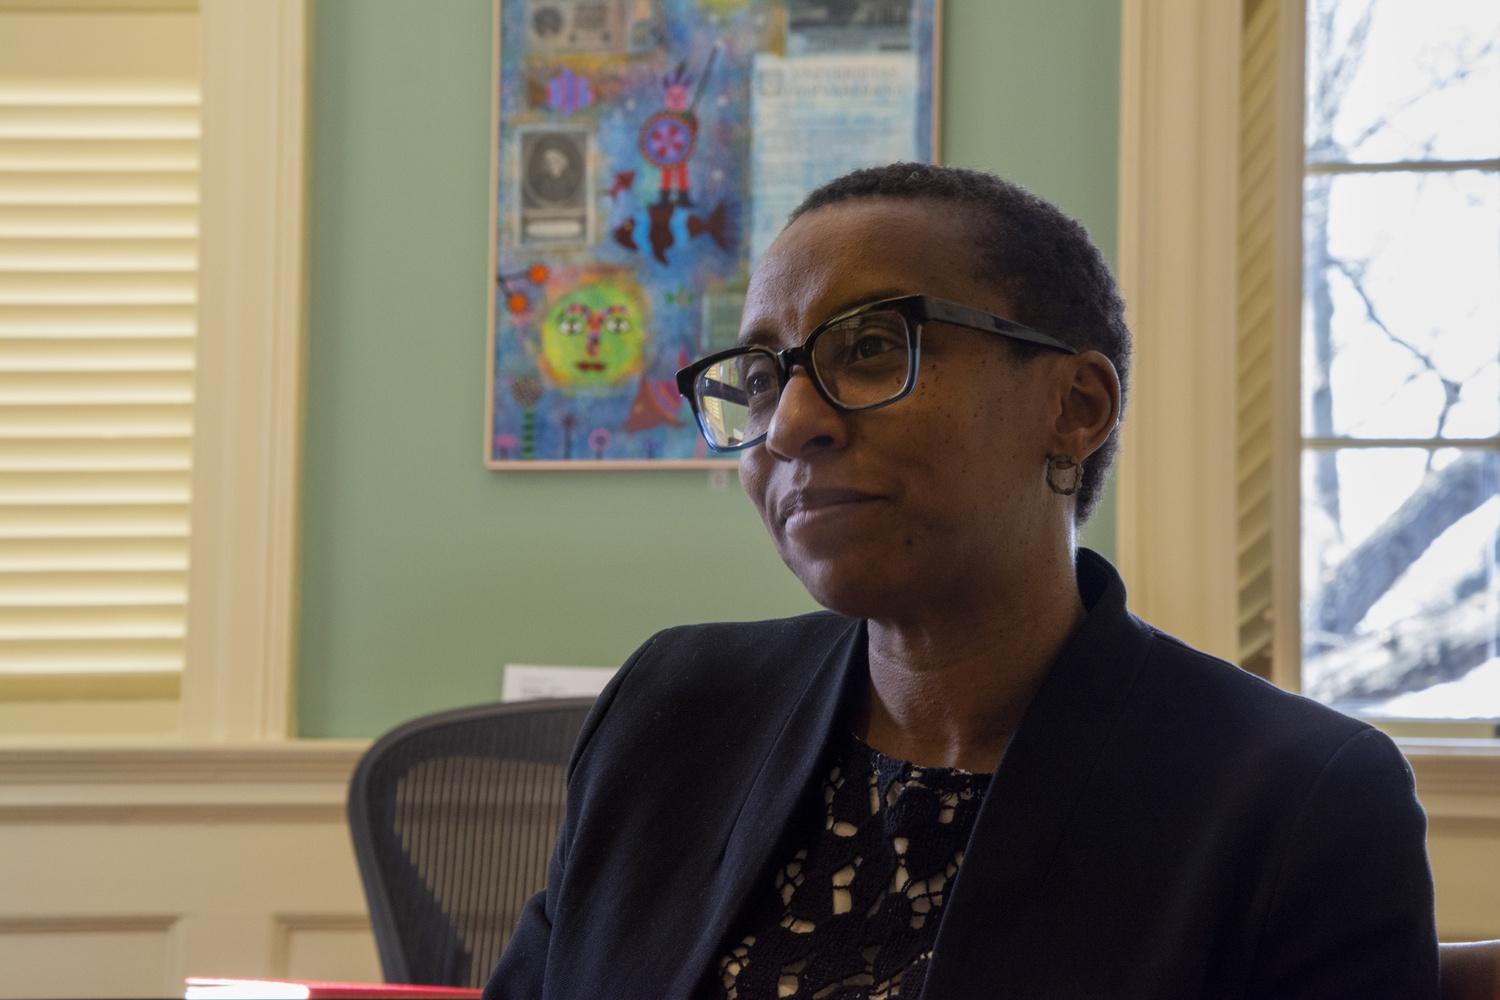 Gay underscored Harvard's efforts to support faculty of color.